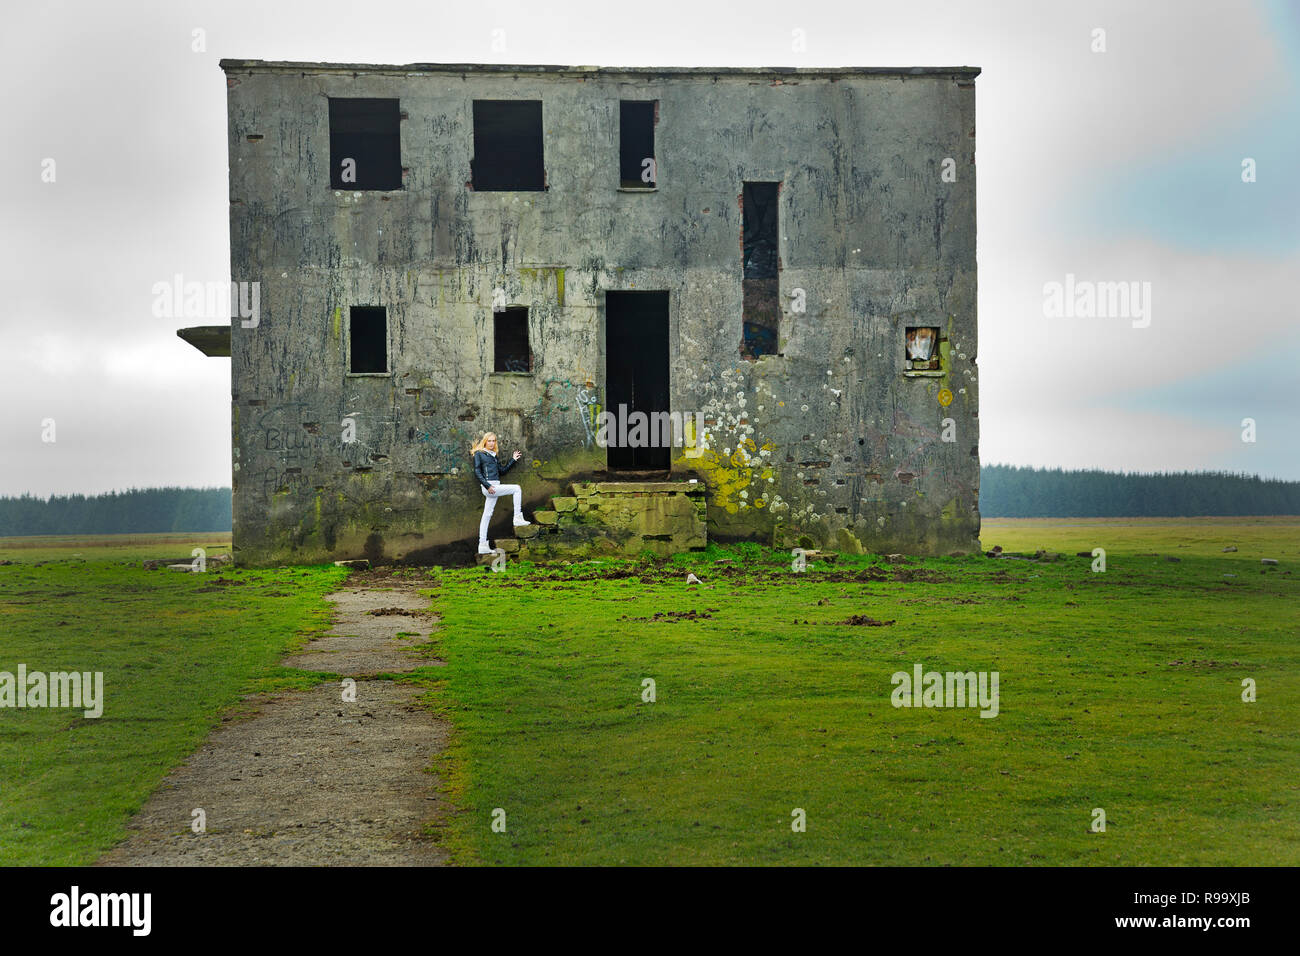 A young blond model entering an old disused building - Stock Image